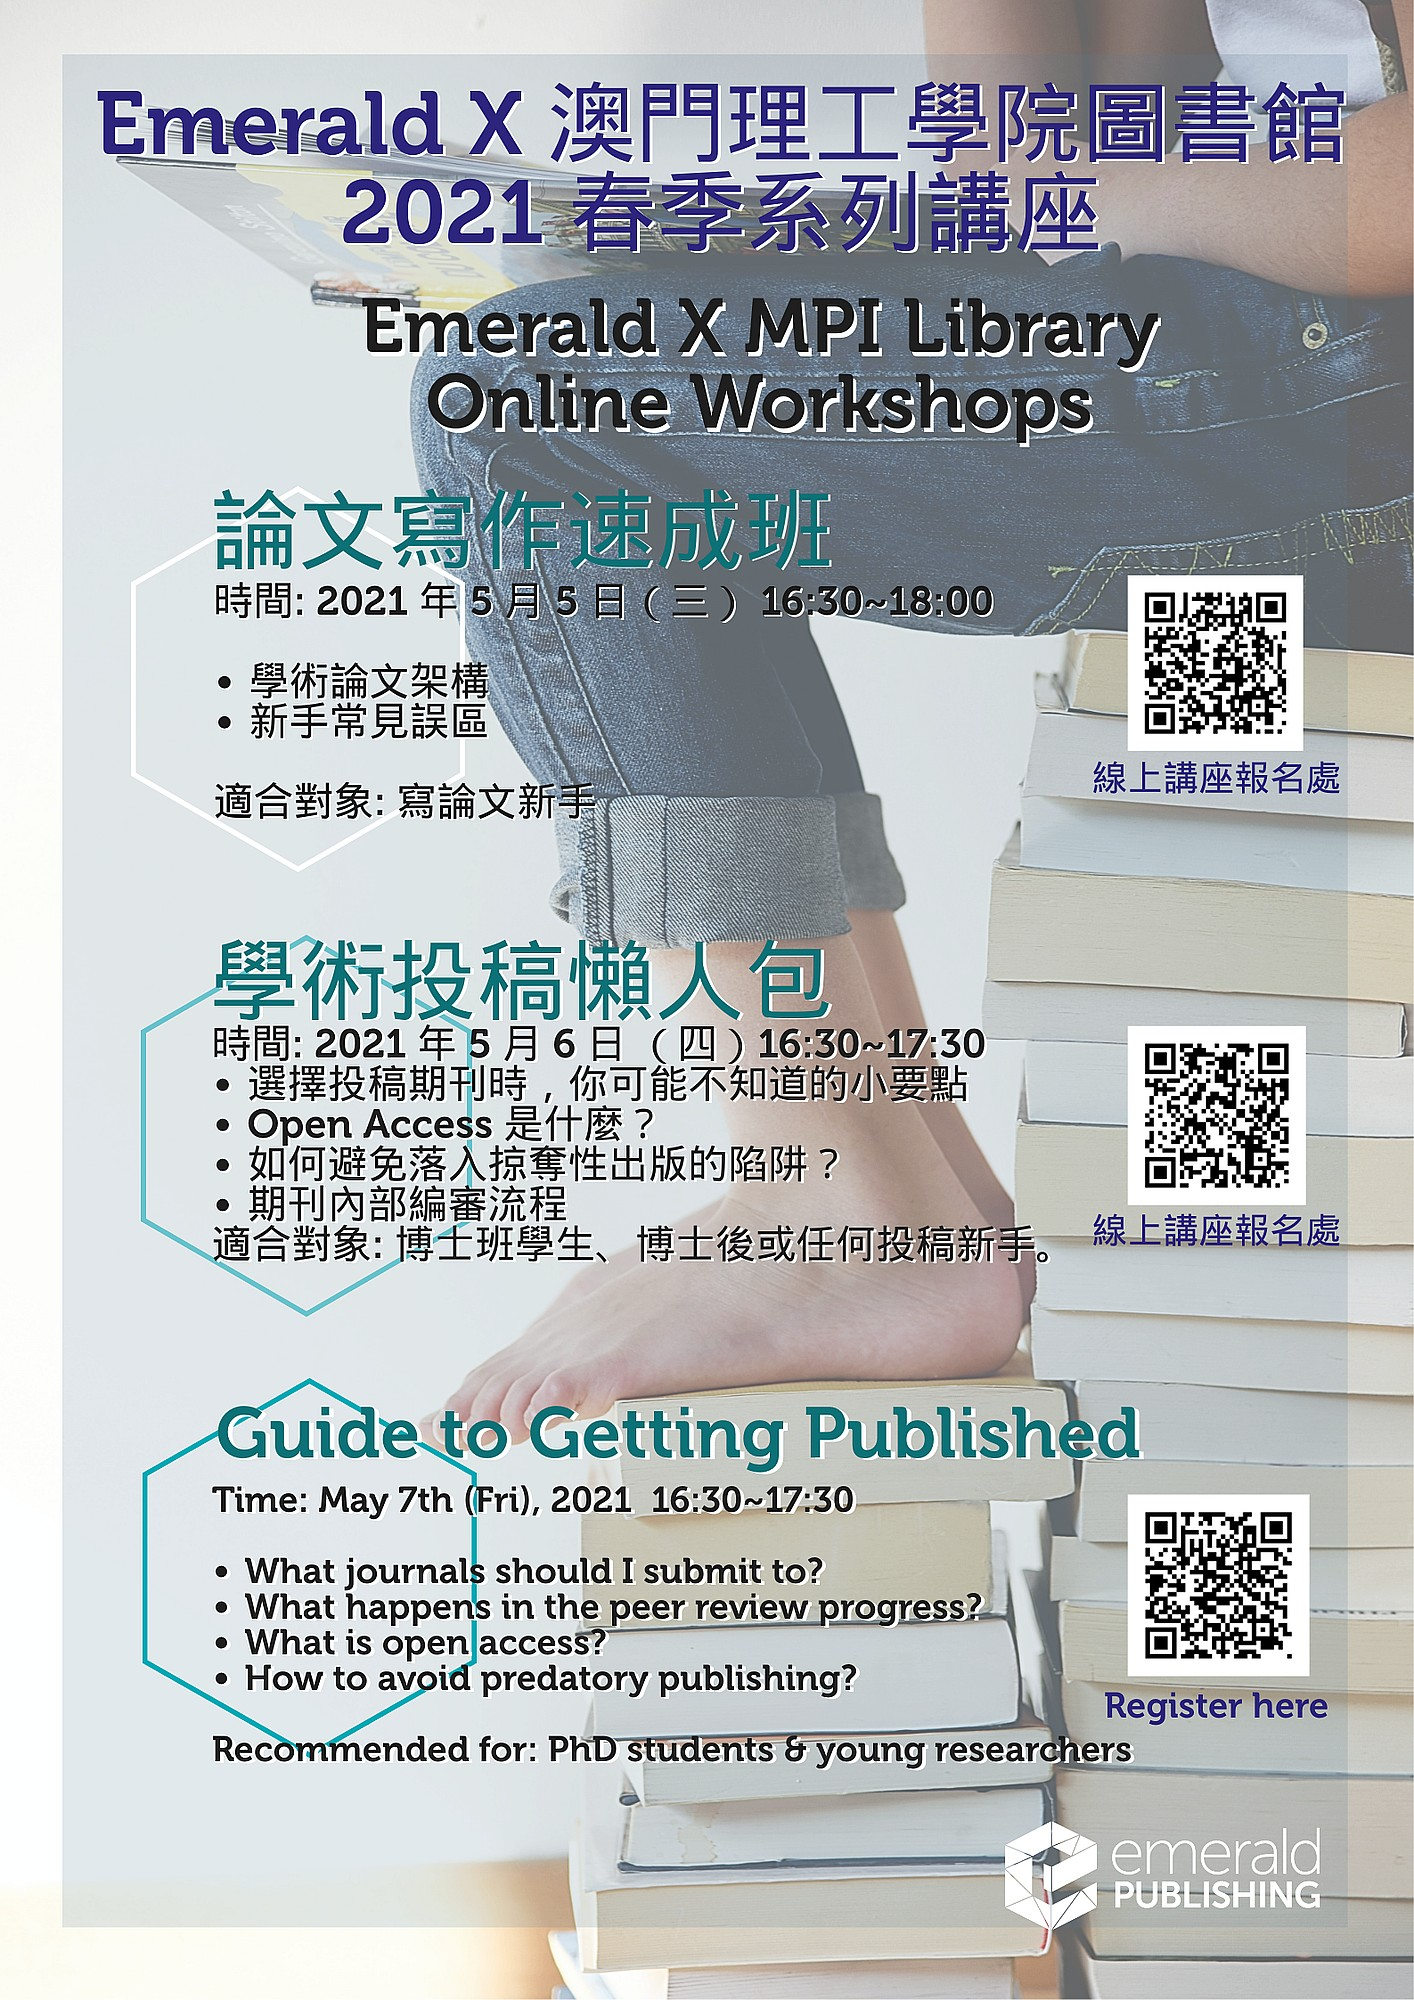 Emerald X MPI Library Online Workshop 2021